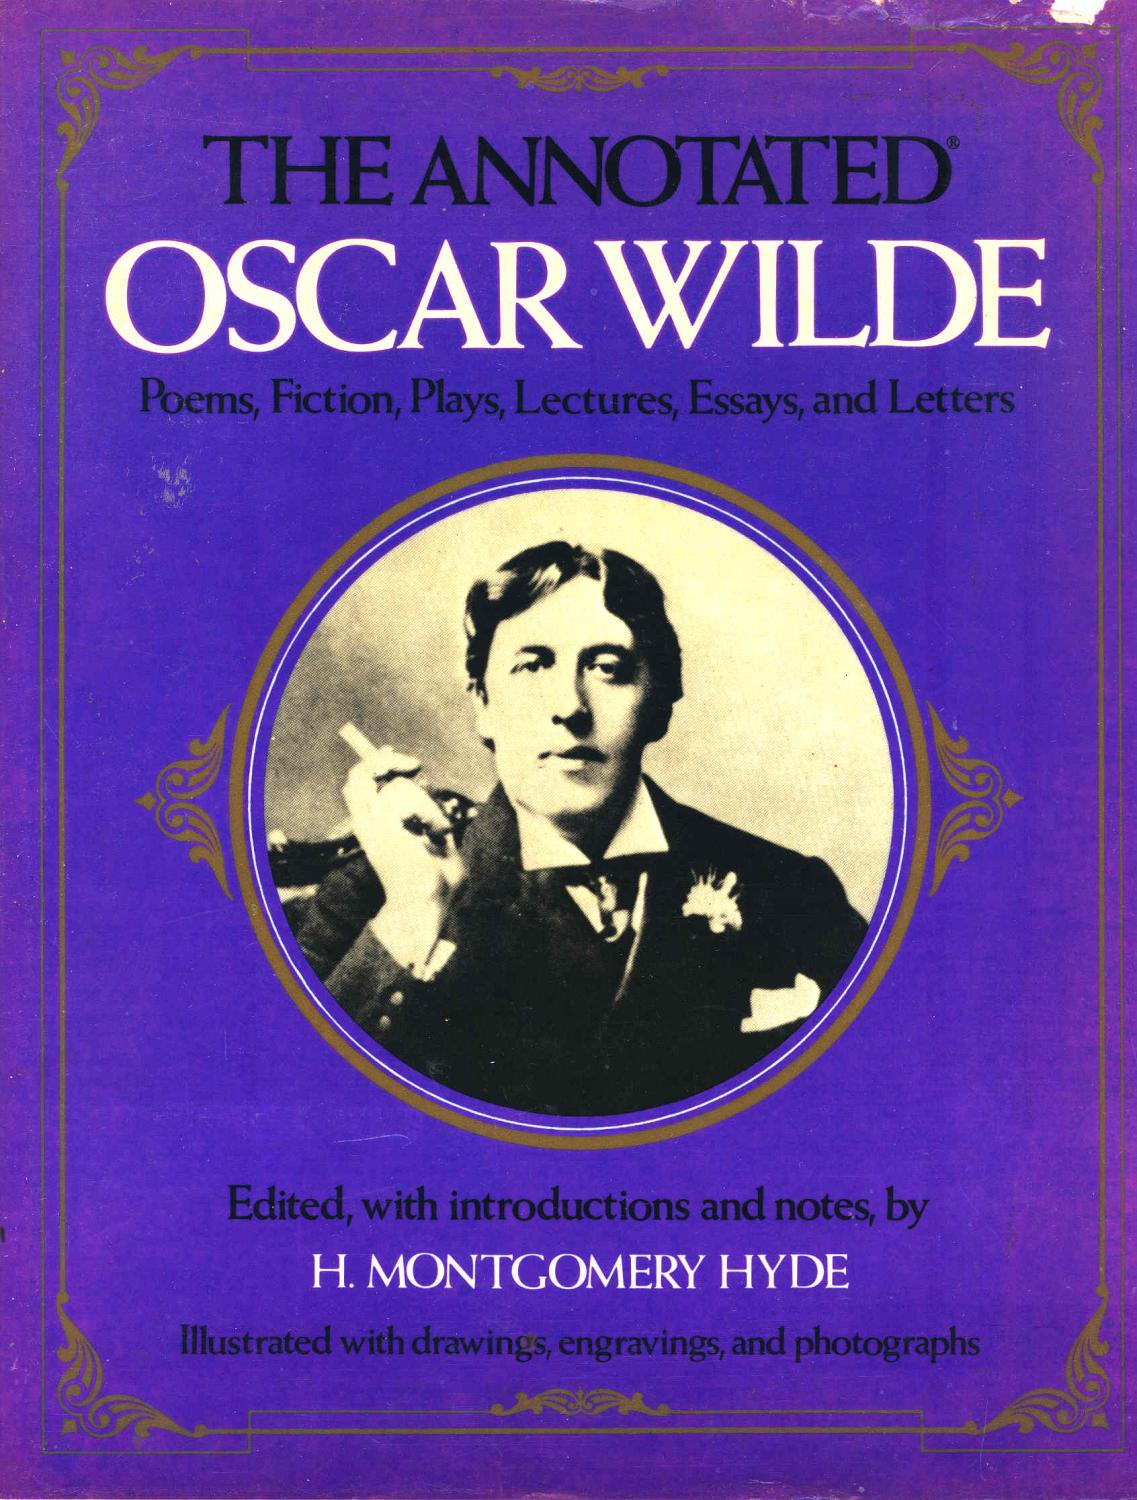 poems by oscar wilde the ballad of reading gaol by oscar poems by oscar wilde the ballad of reading gaol by oscar wilde